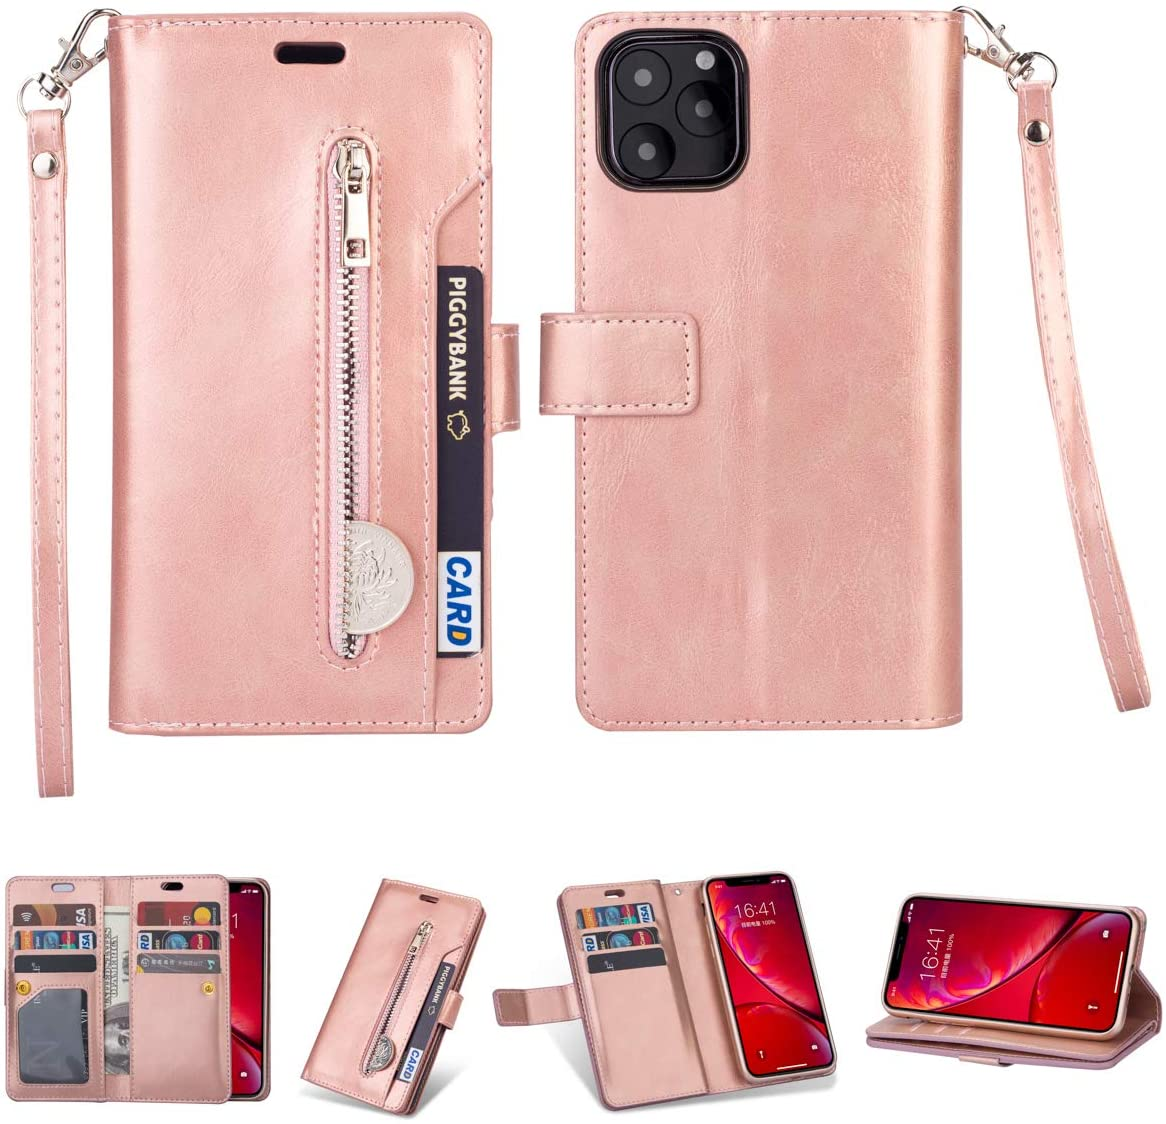 standardrich iPhone 11 Pro maxCase, iPhone 11 Pro max Wallet Case with RFID Blocking Viewing Stand Card Slots Magnetic Closure PU Leather Flip Cover Compatible with iPhone 11 Pro 2019 6.5. (Rose Gold)